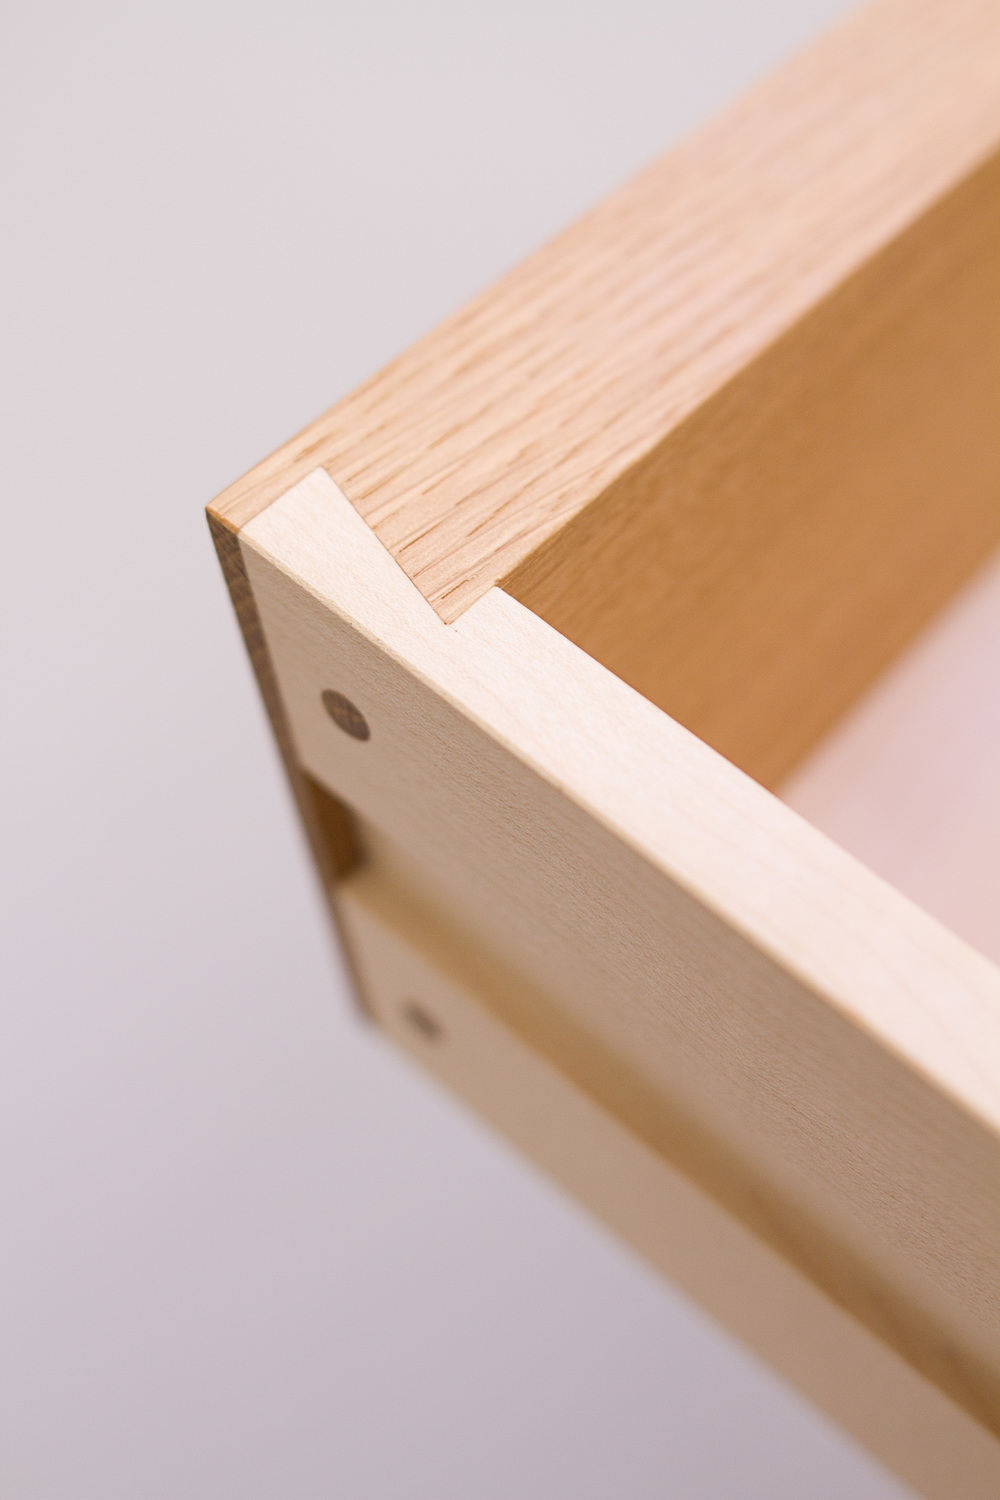 dovetail detail of hand crafted custom desk design hand crafted by maker Namon Gaston